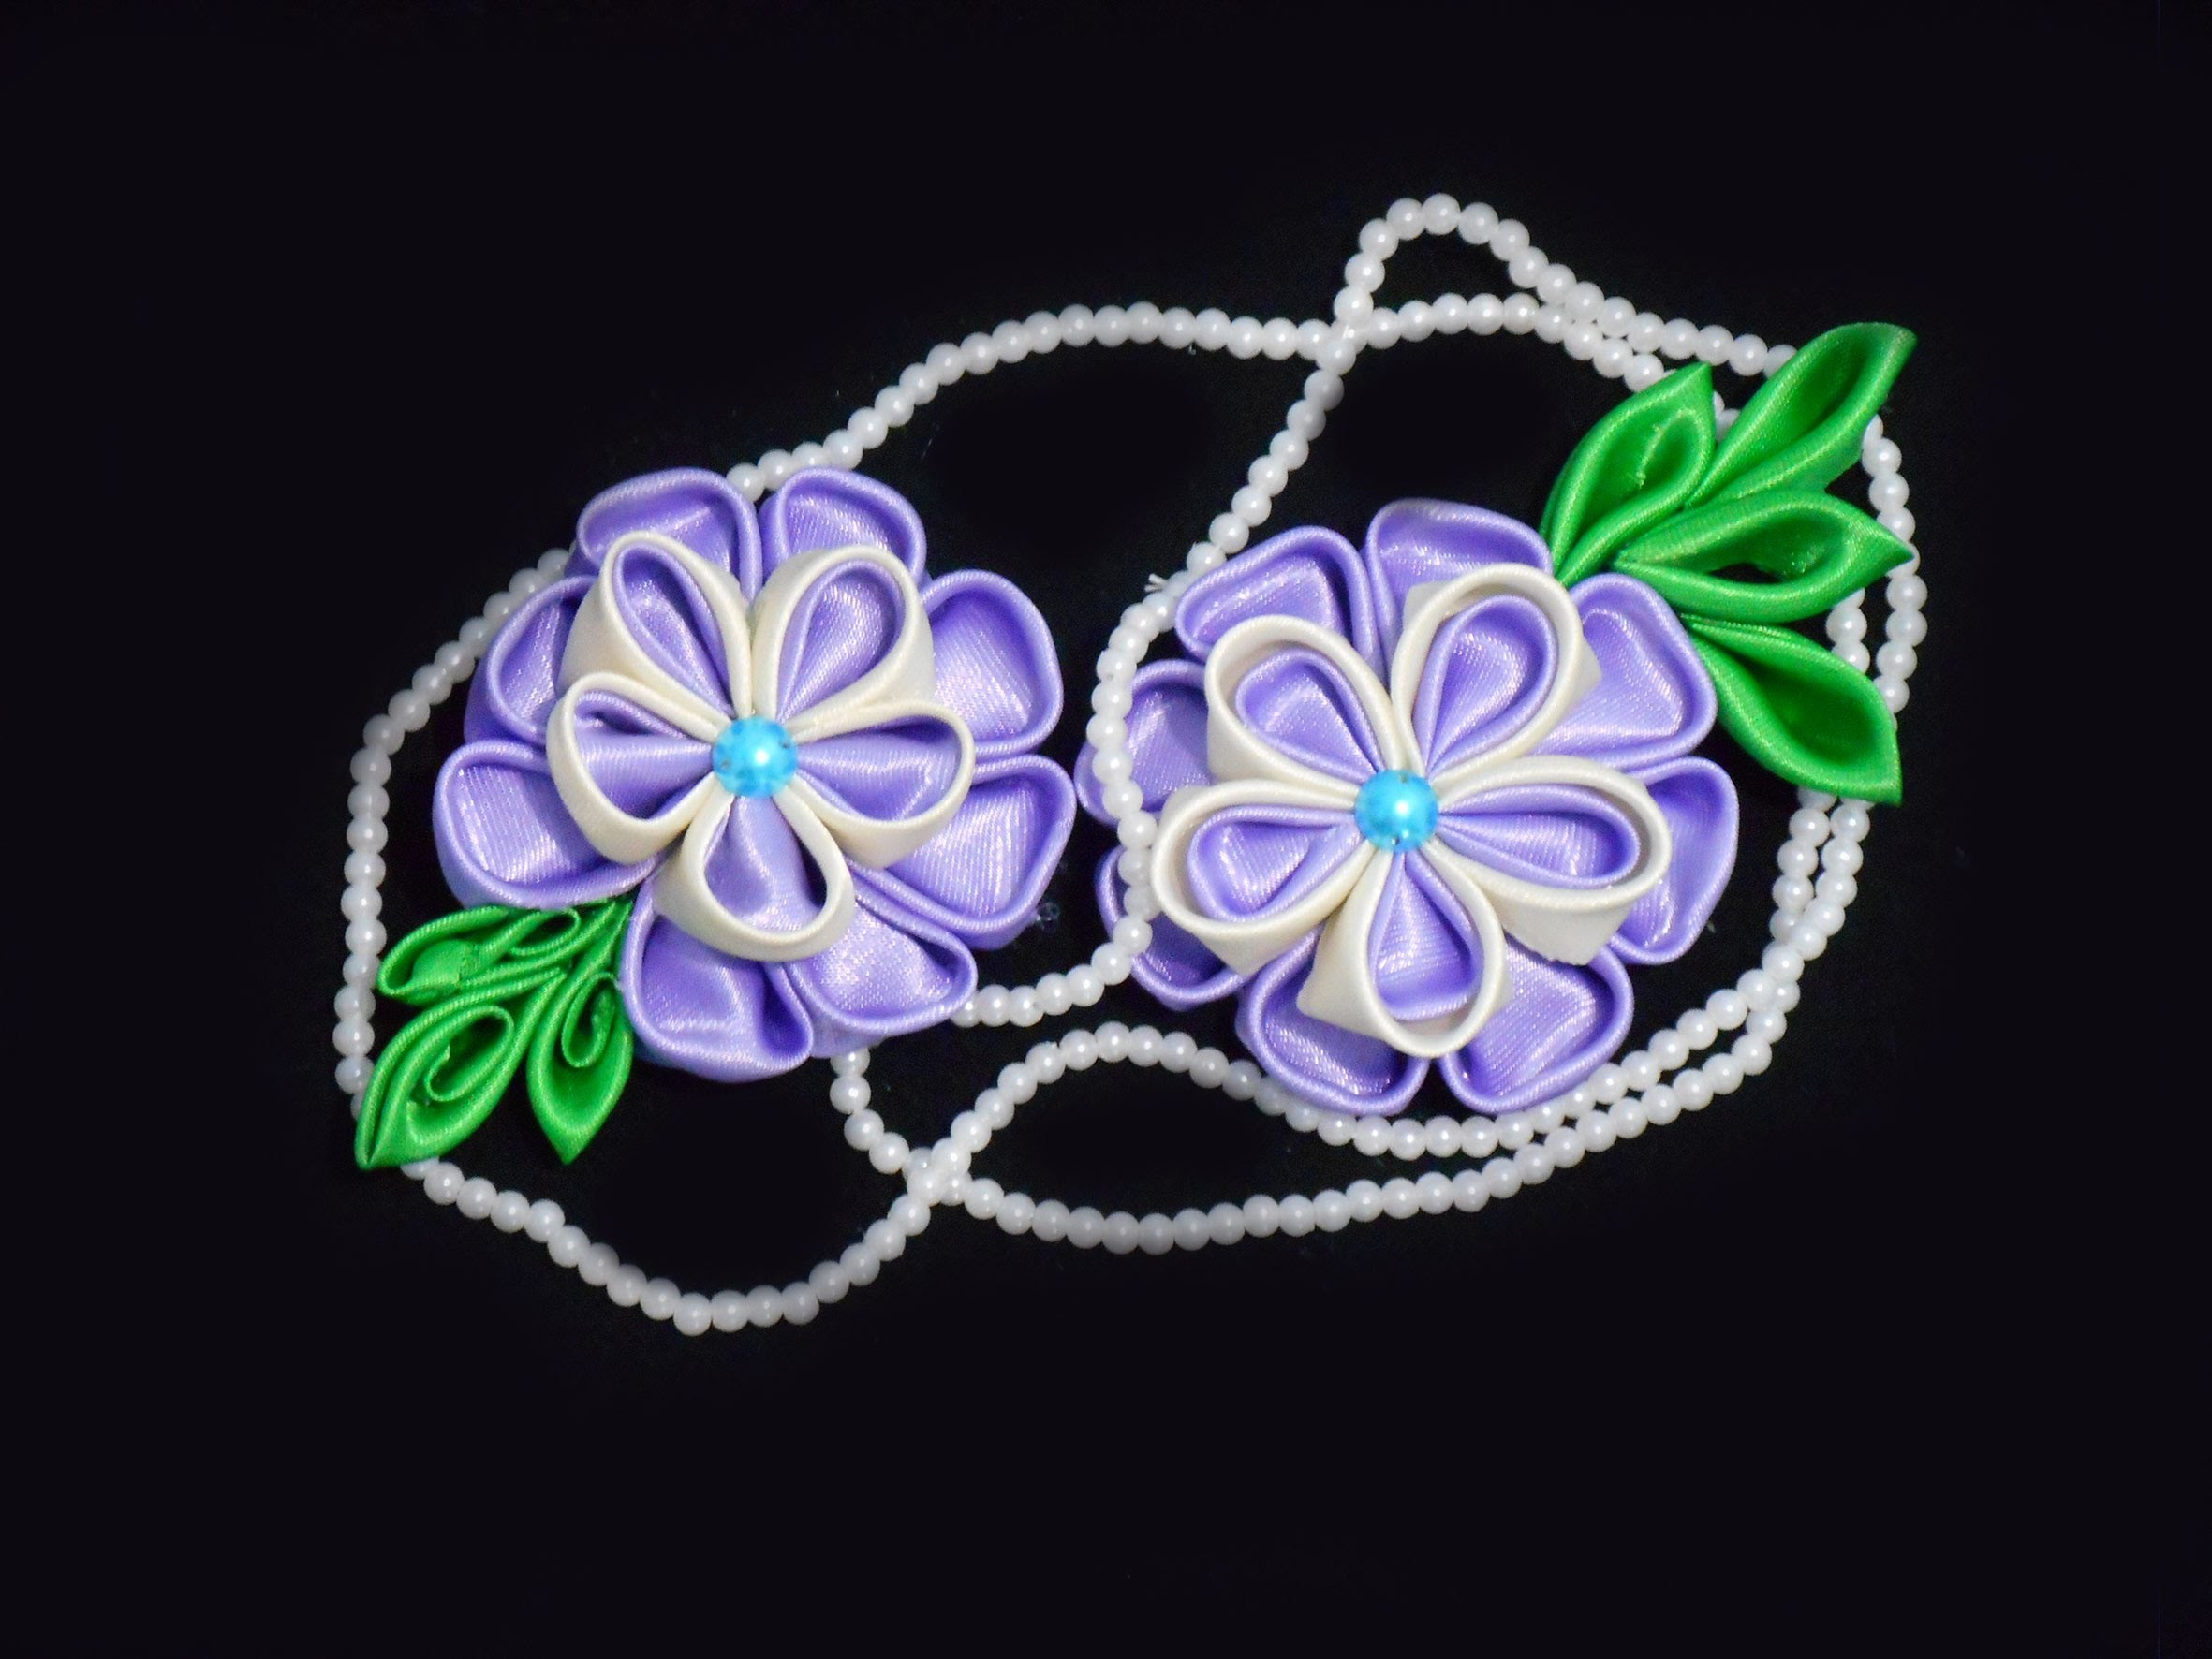 Ribbon Flowers. How to Make Ribbon Flowers. Kanzashi flowers